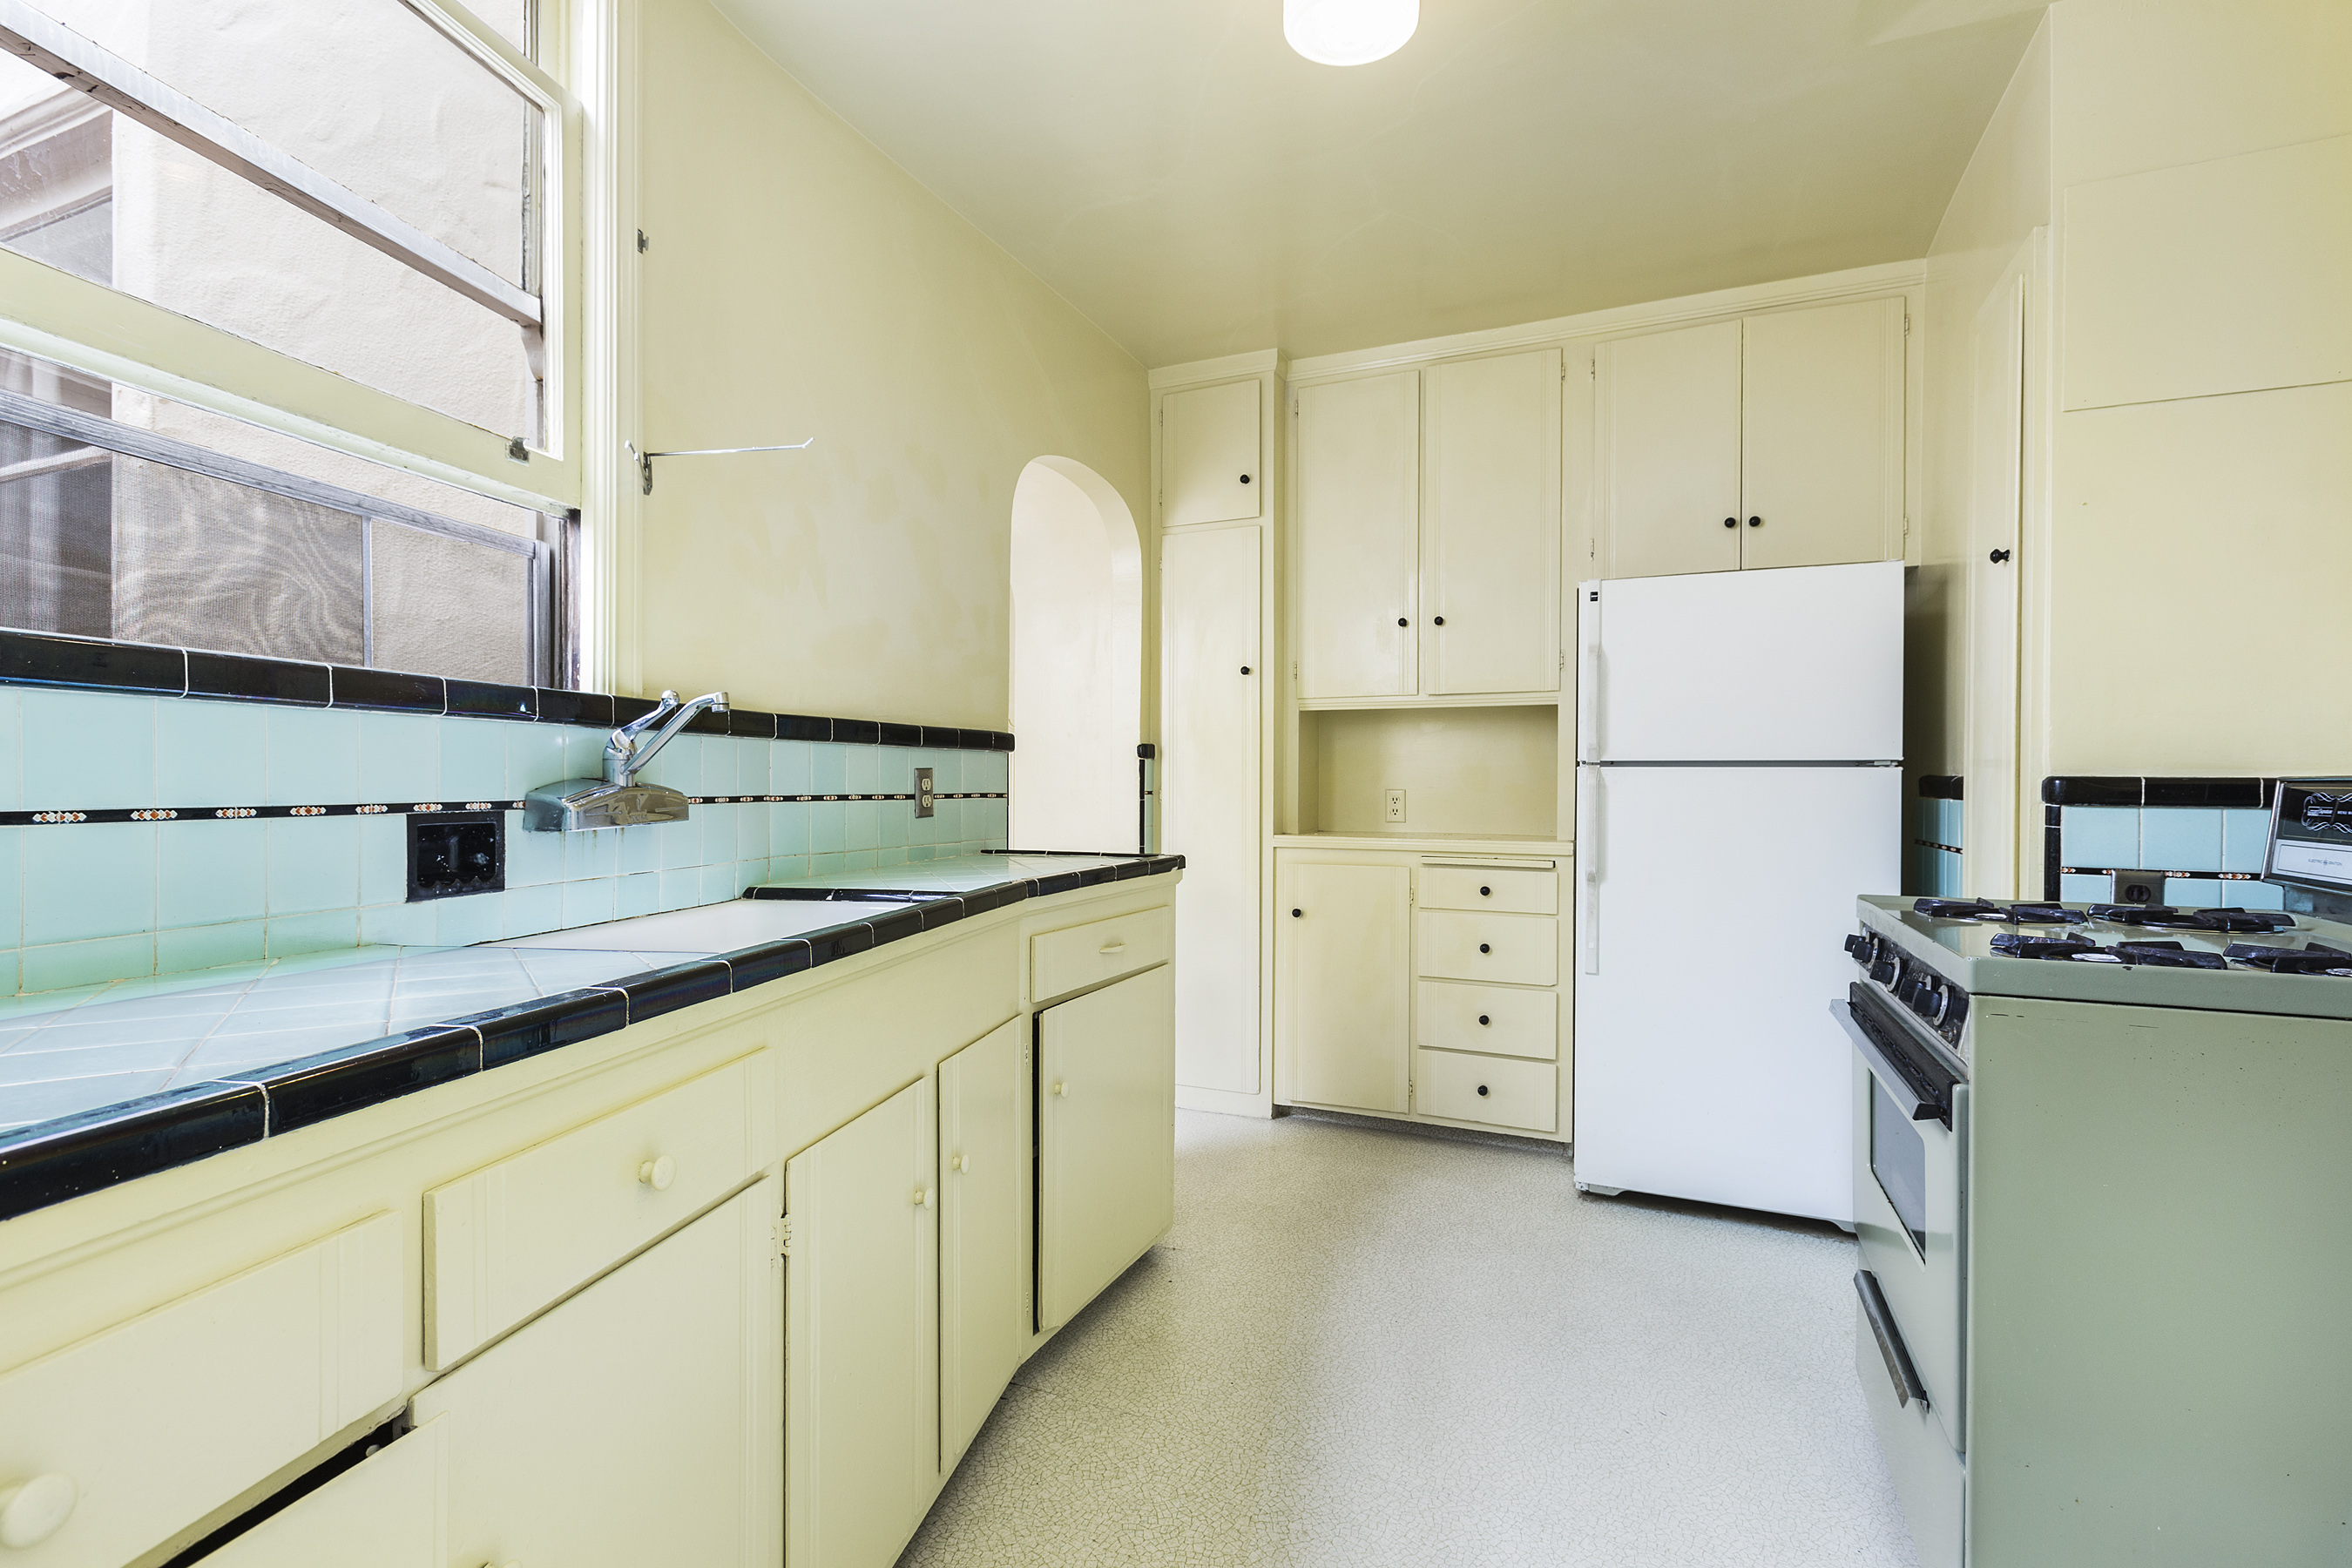 Kitchen Remodeling Questions To Ask